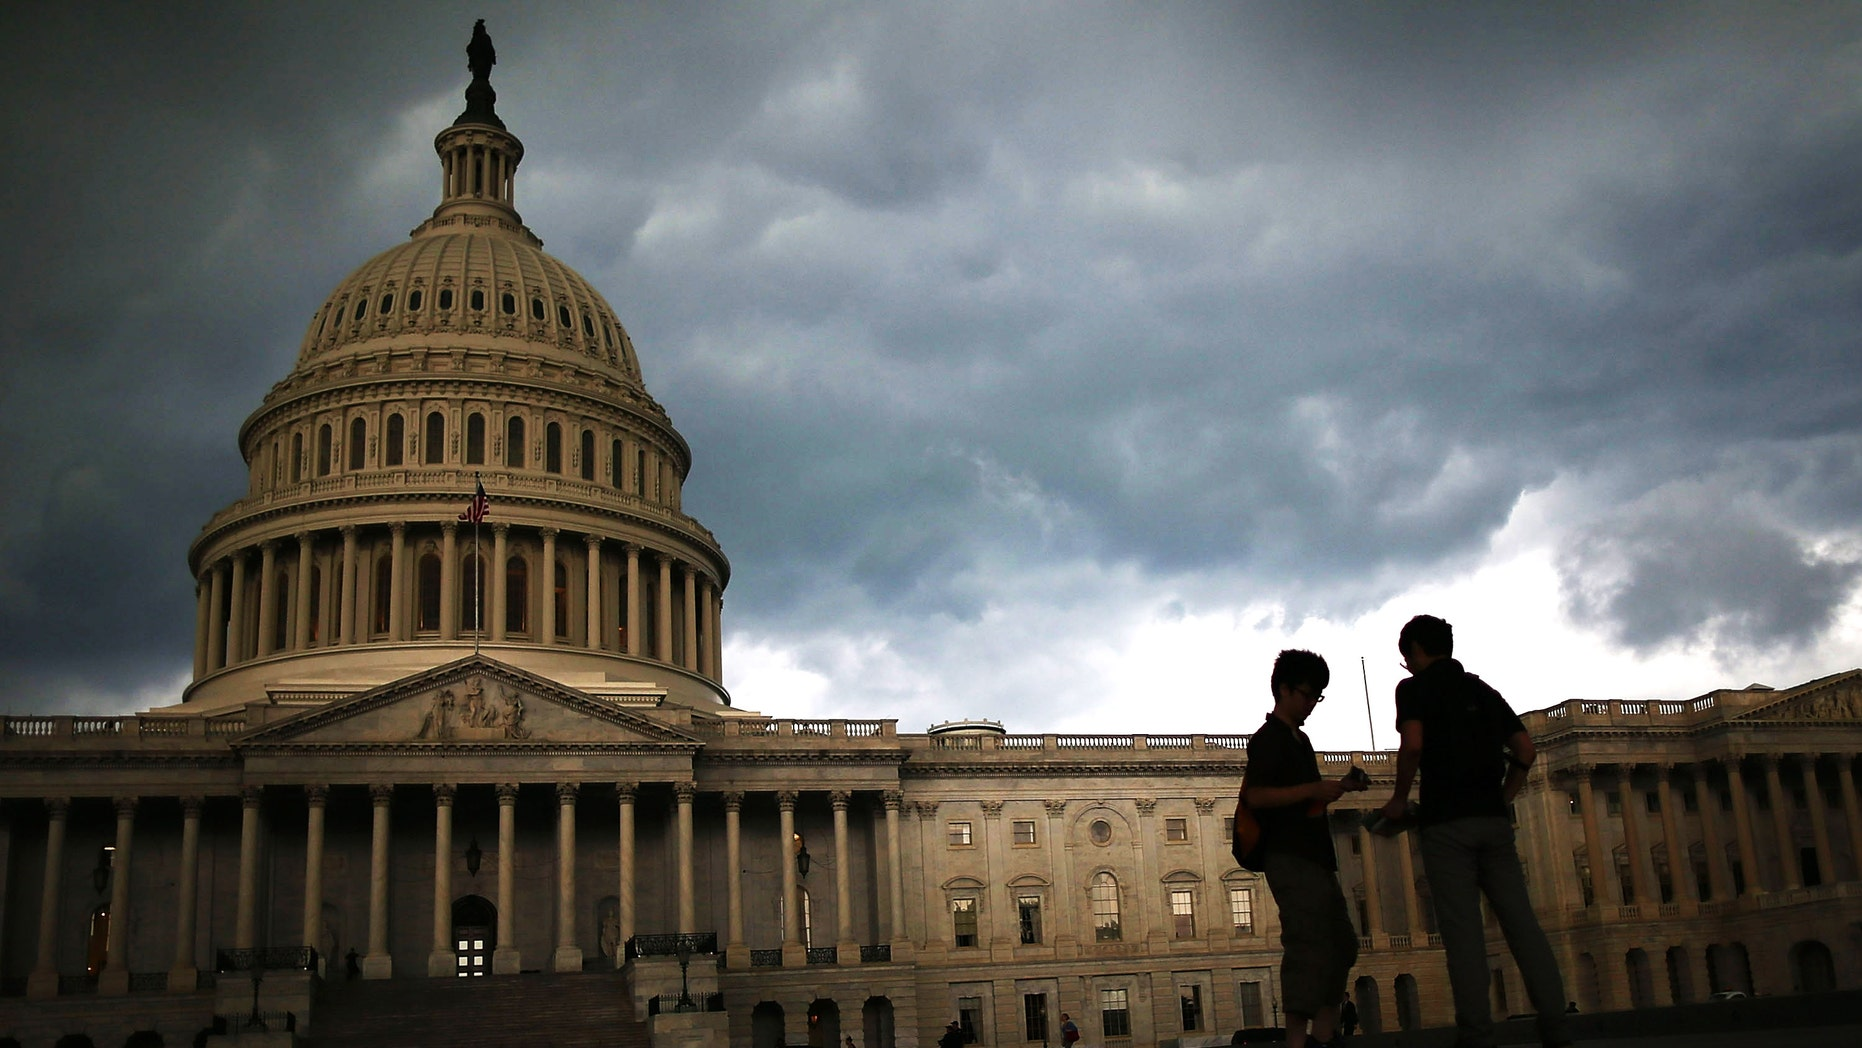 WASHINGTON, DC - JUNE 13: Two men stand on the plaza of the U.S. Capitol Building as storm clouds fill the sky, June 13, 2013 in Washington, DC. Potentially damaging storms are forecasted to hit parts of the east coast with potential for causing power wide spread outages.  (Photo by Mark Wilson/Getty Images)